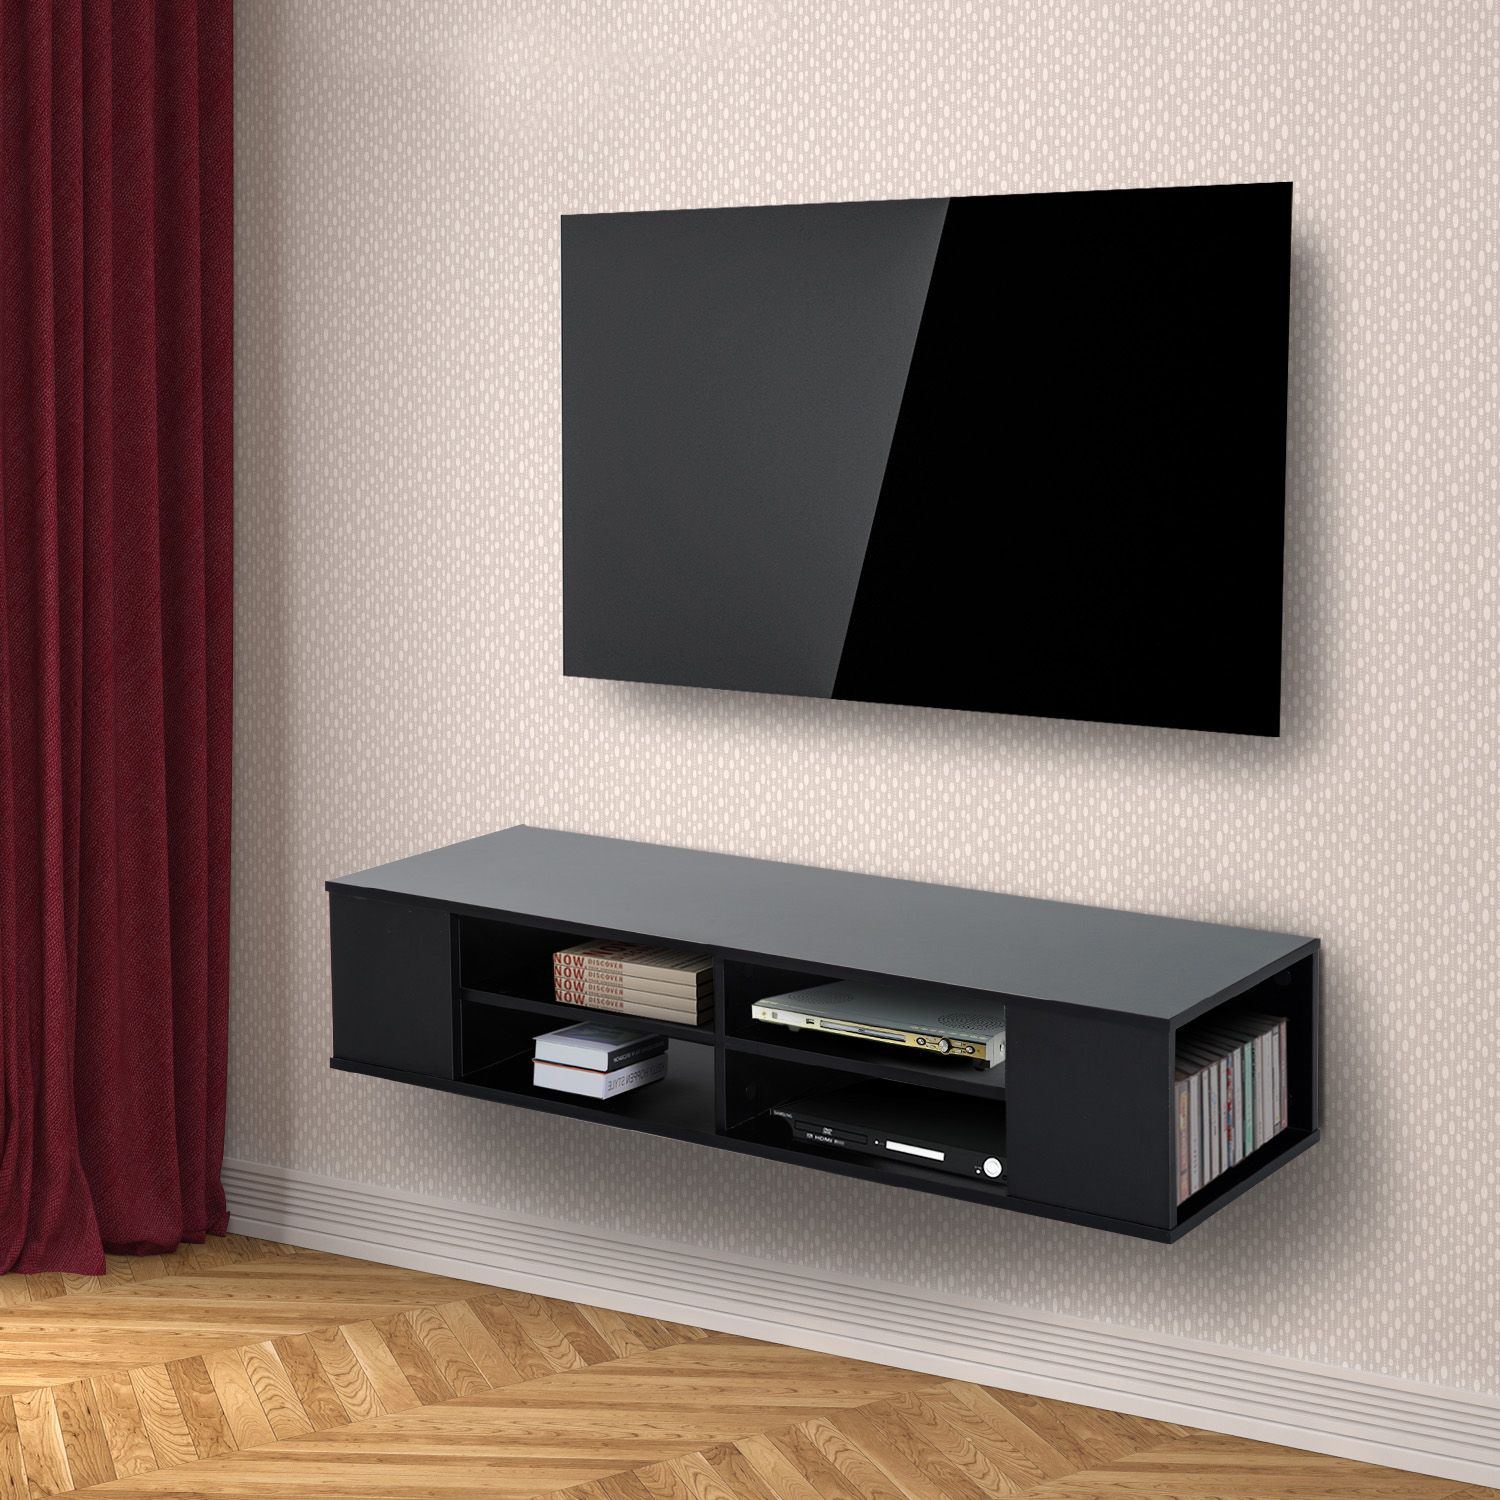 Modern Tv Unit: Modern 47 Floating Wall Mounted TV Stand Unit Cabinet